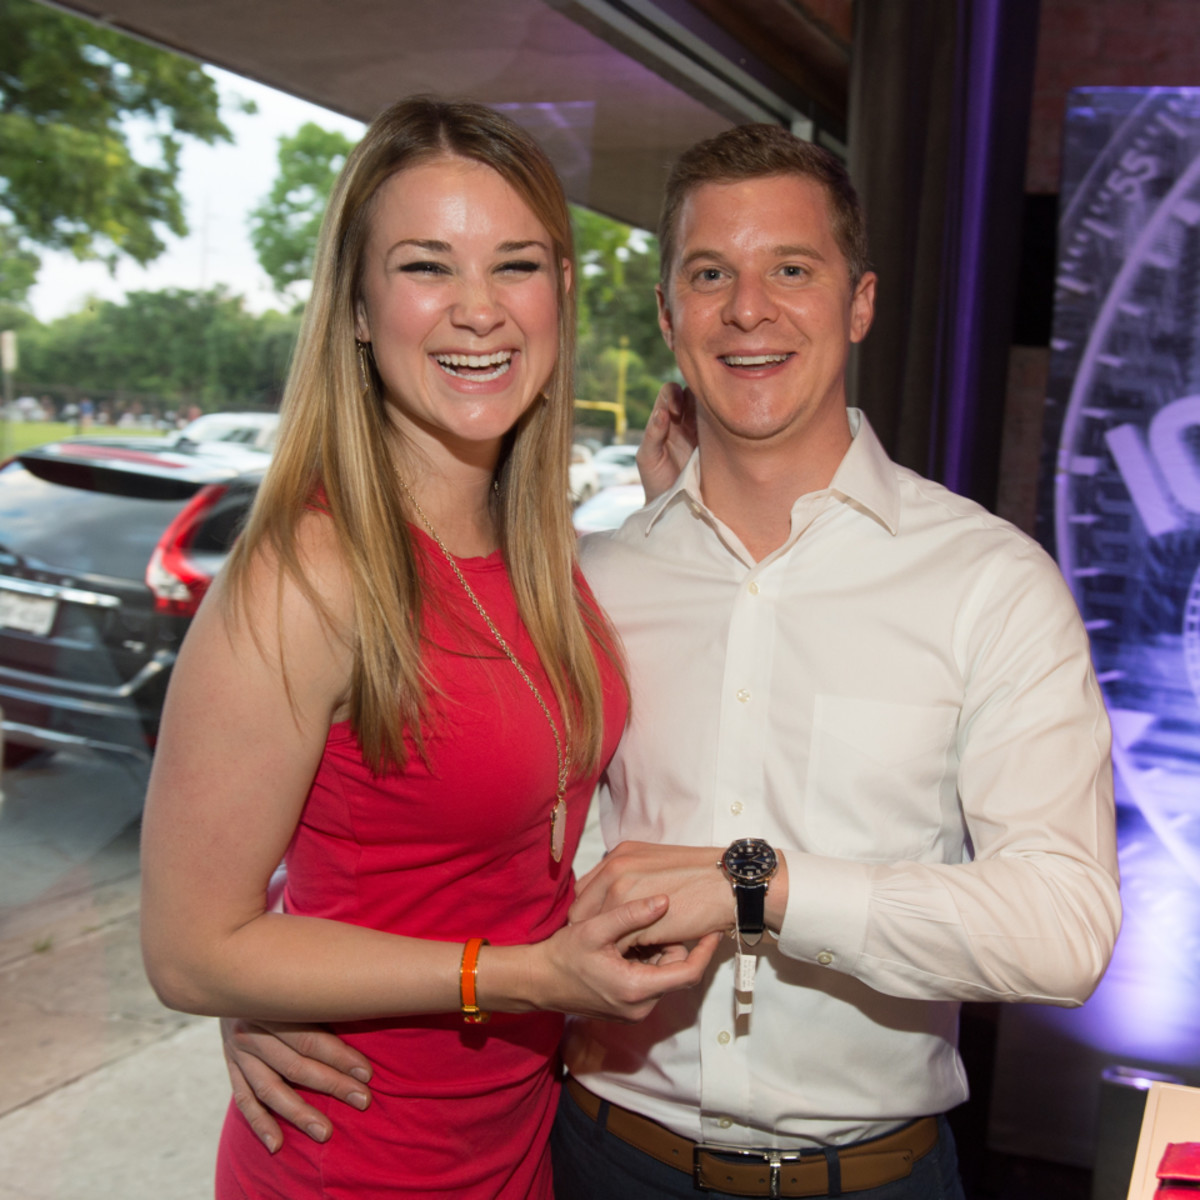 Camerata and Tiffany Watch Launch Kate Bracksieck and Chris Robart